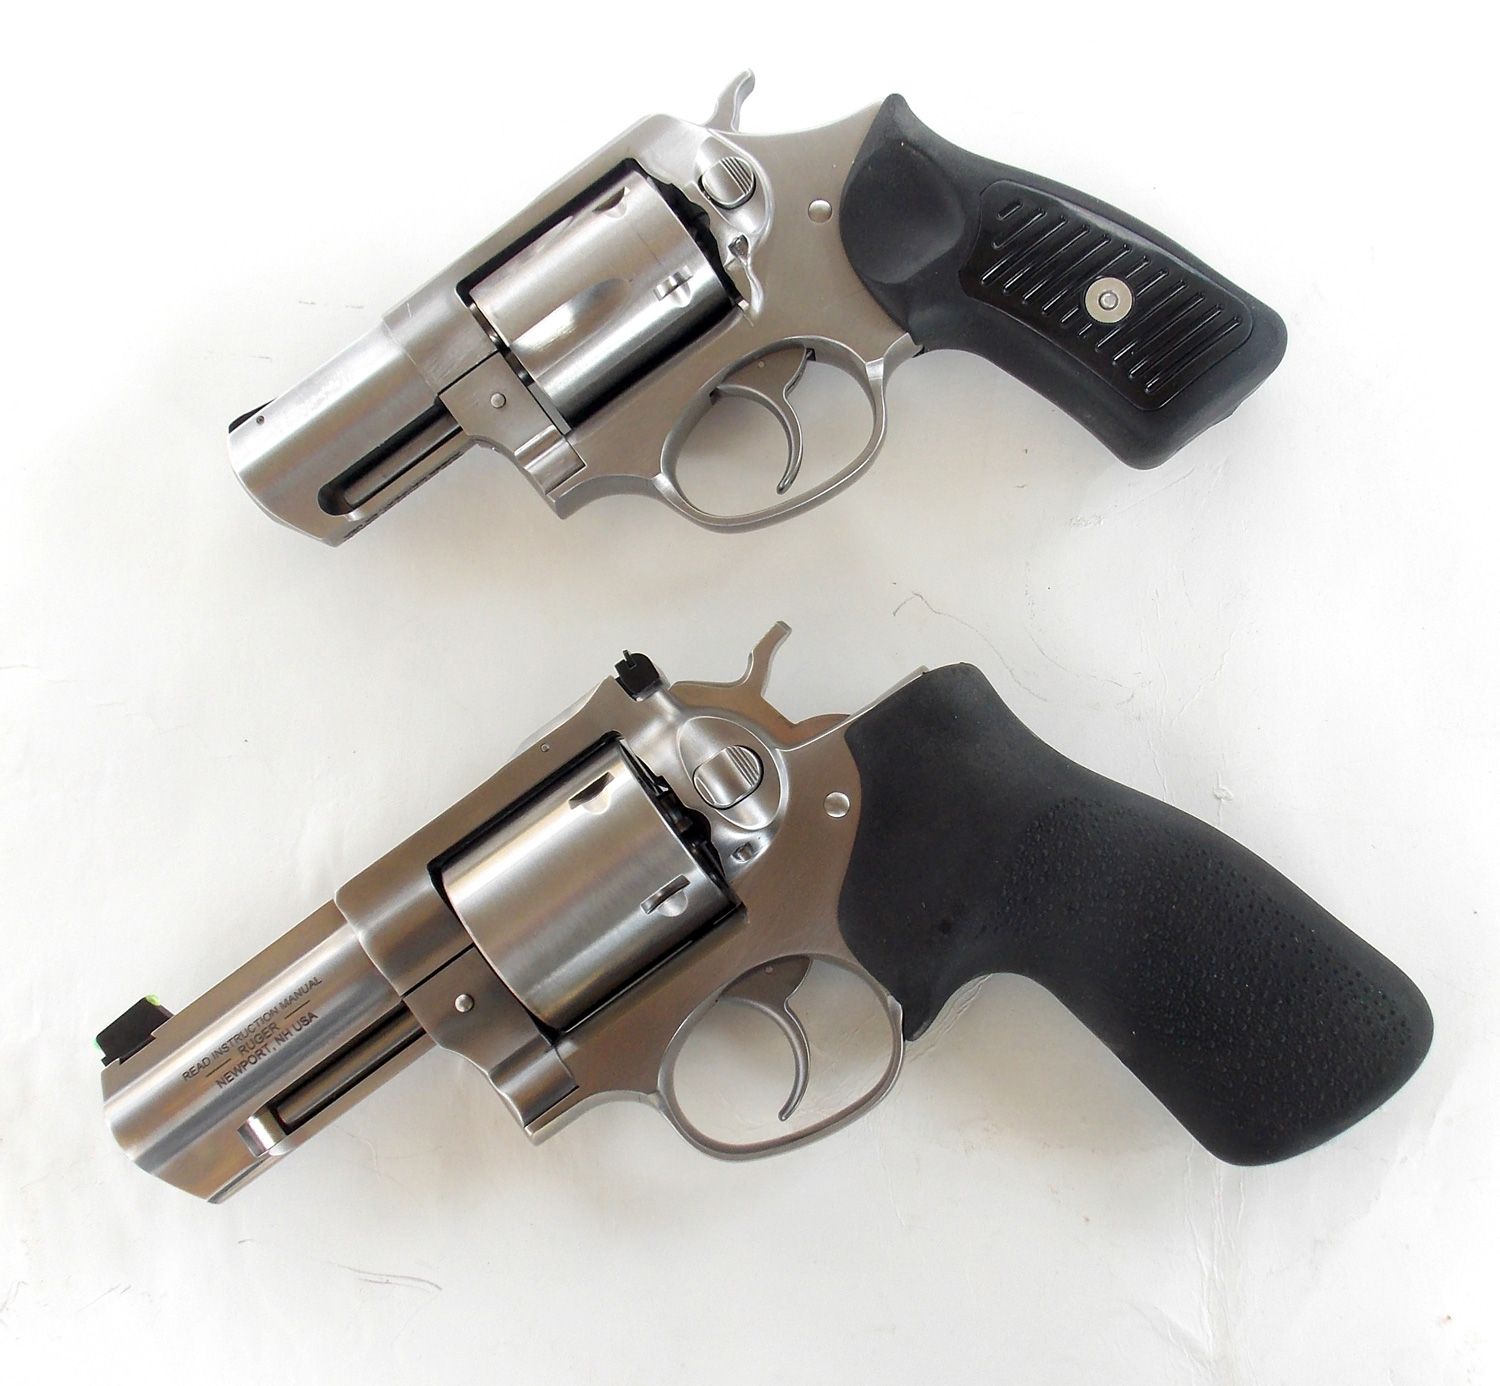 Ruger GP100 bottom and Ruger SP101 .357 Magnum top